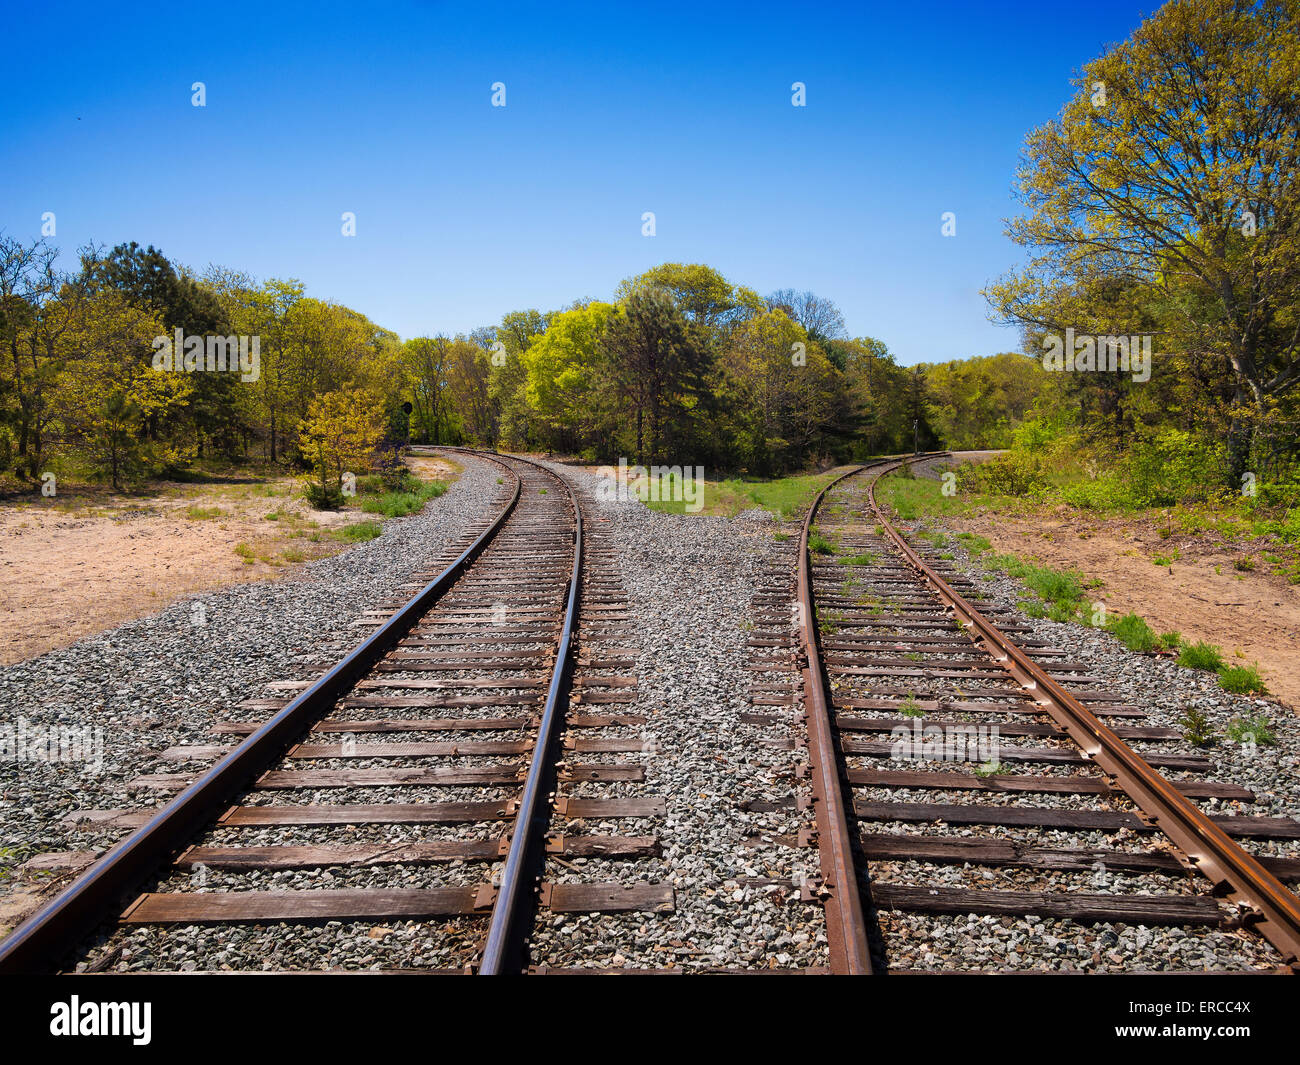 Railroad tracks splitting left and right as a concept for life's choices - Stock Image